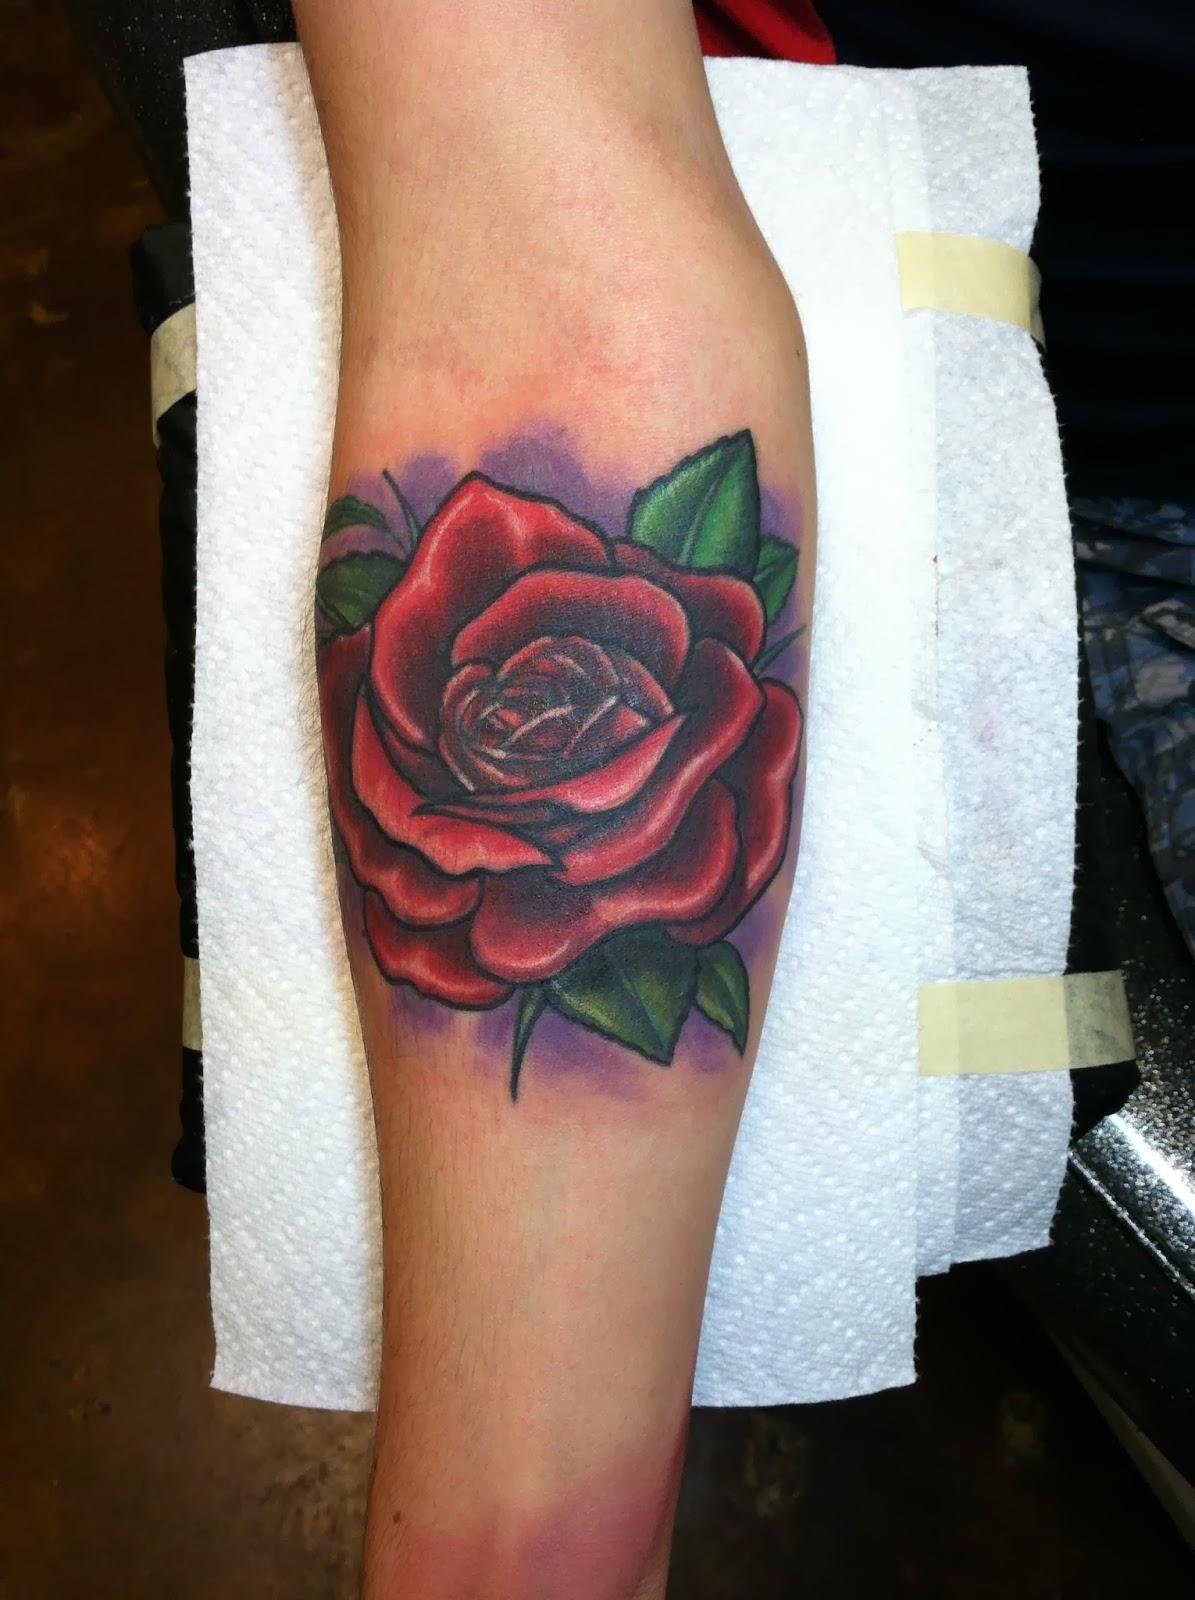 David Meek Tattoos: Illustrative Custom Color Rose Forearm Tattoo